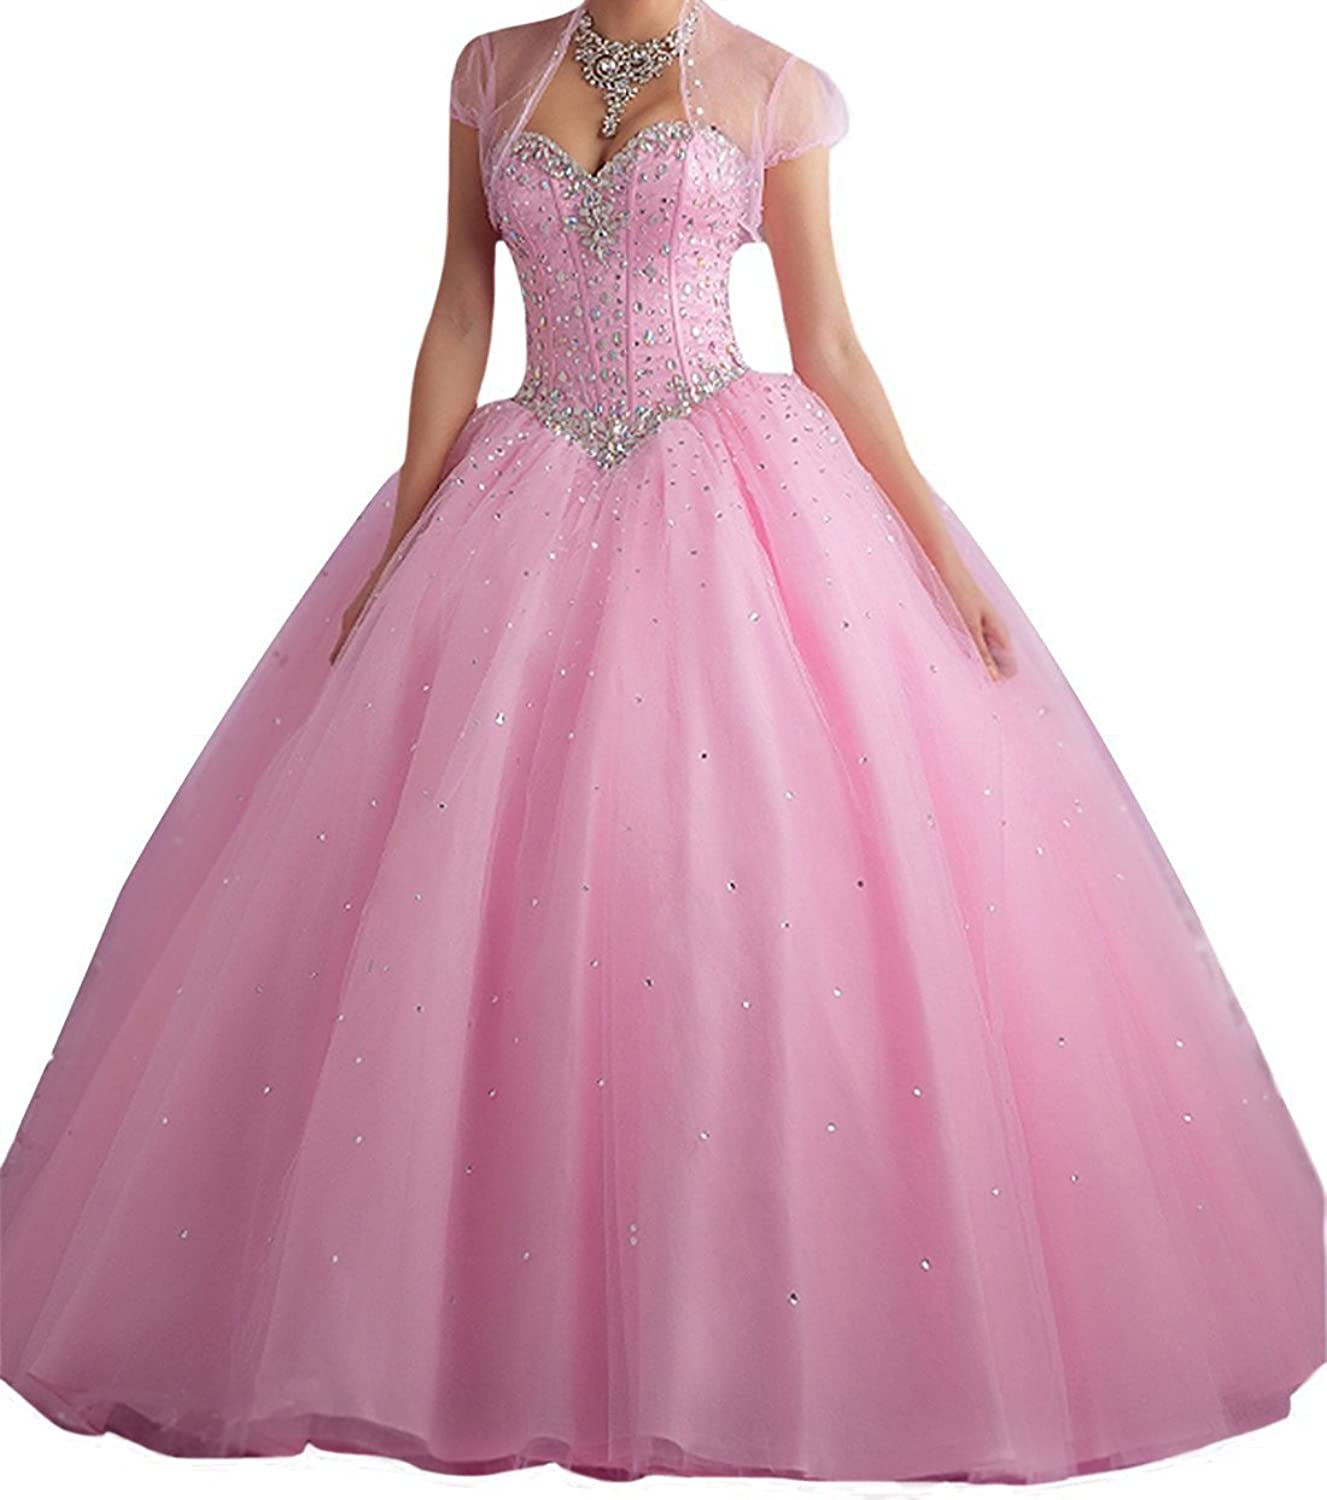 Kaitaijidian Women's Sweetheart Long Quinceanera Dresses Beaded Prom Dresses Ball Gown 651